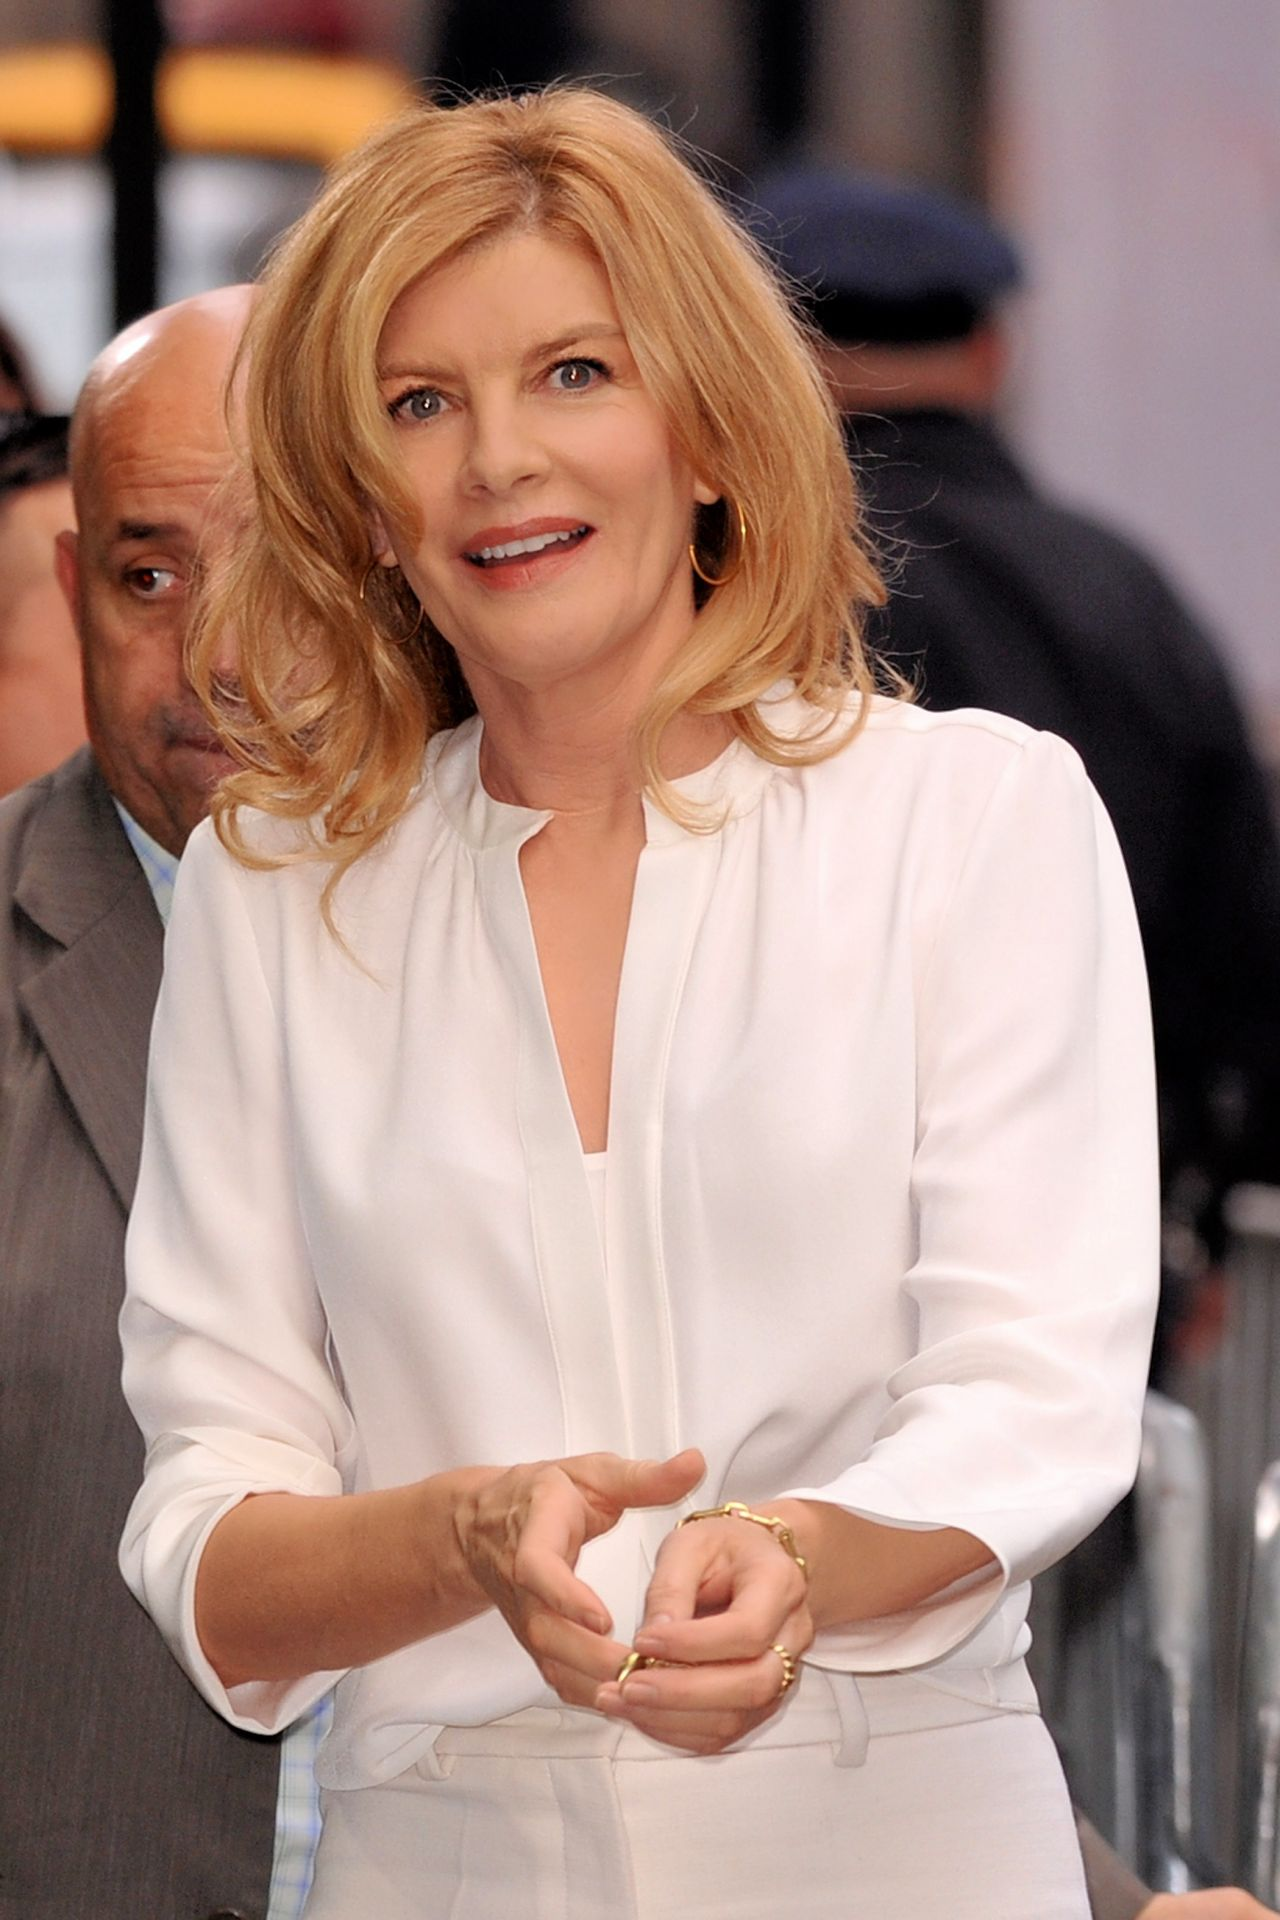 Rene Russo Arriving To Appear On Good Morning America In